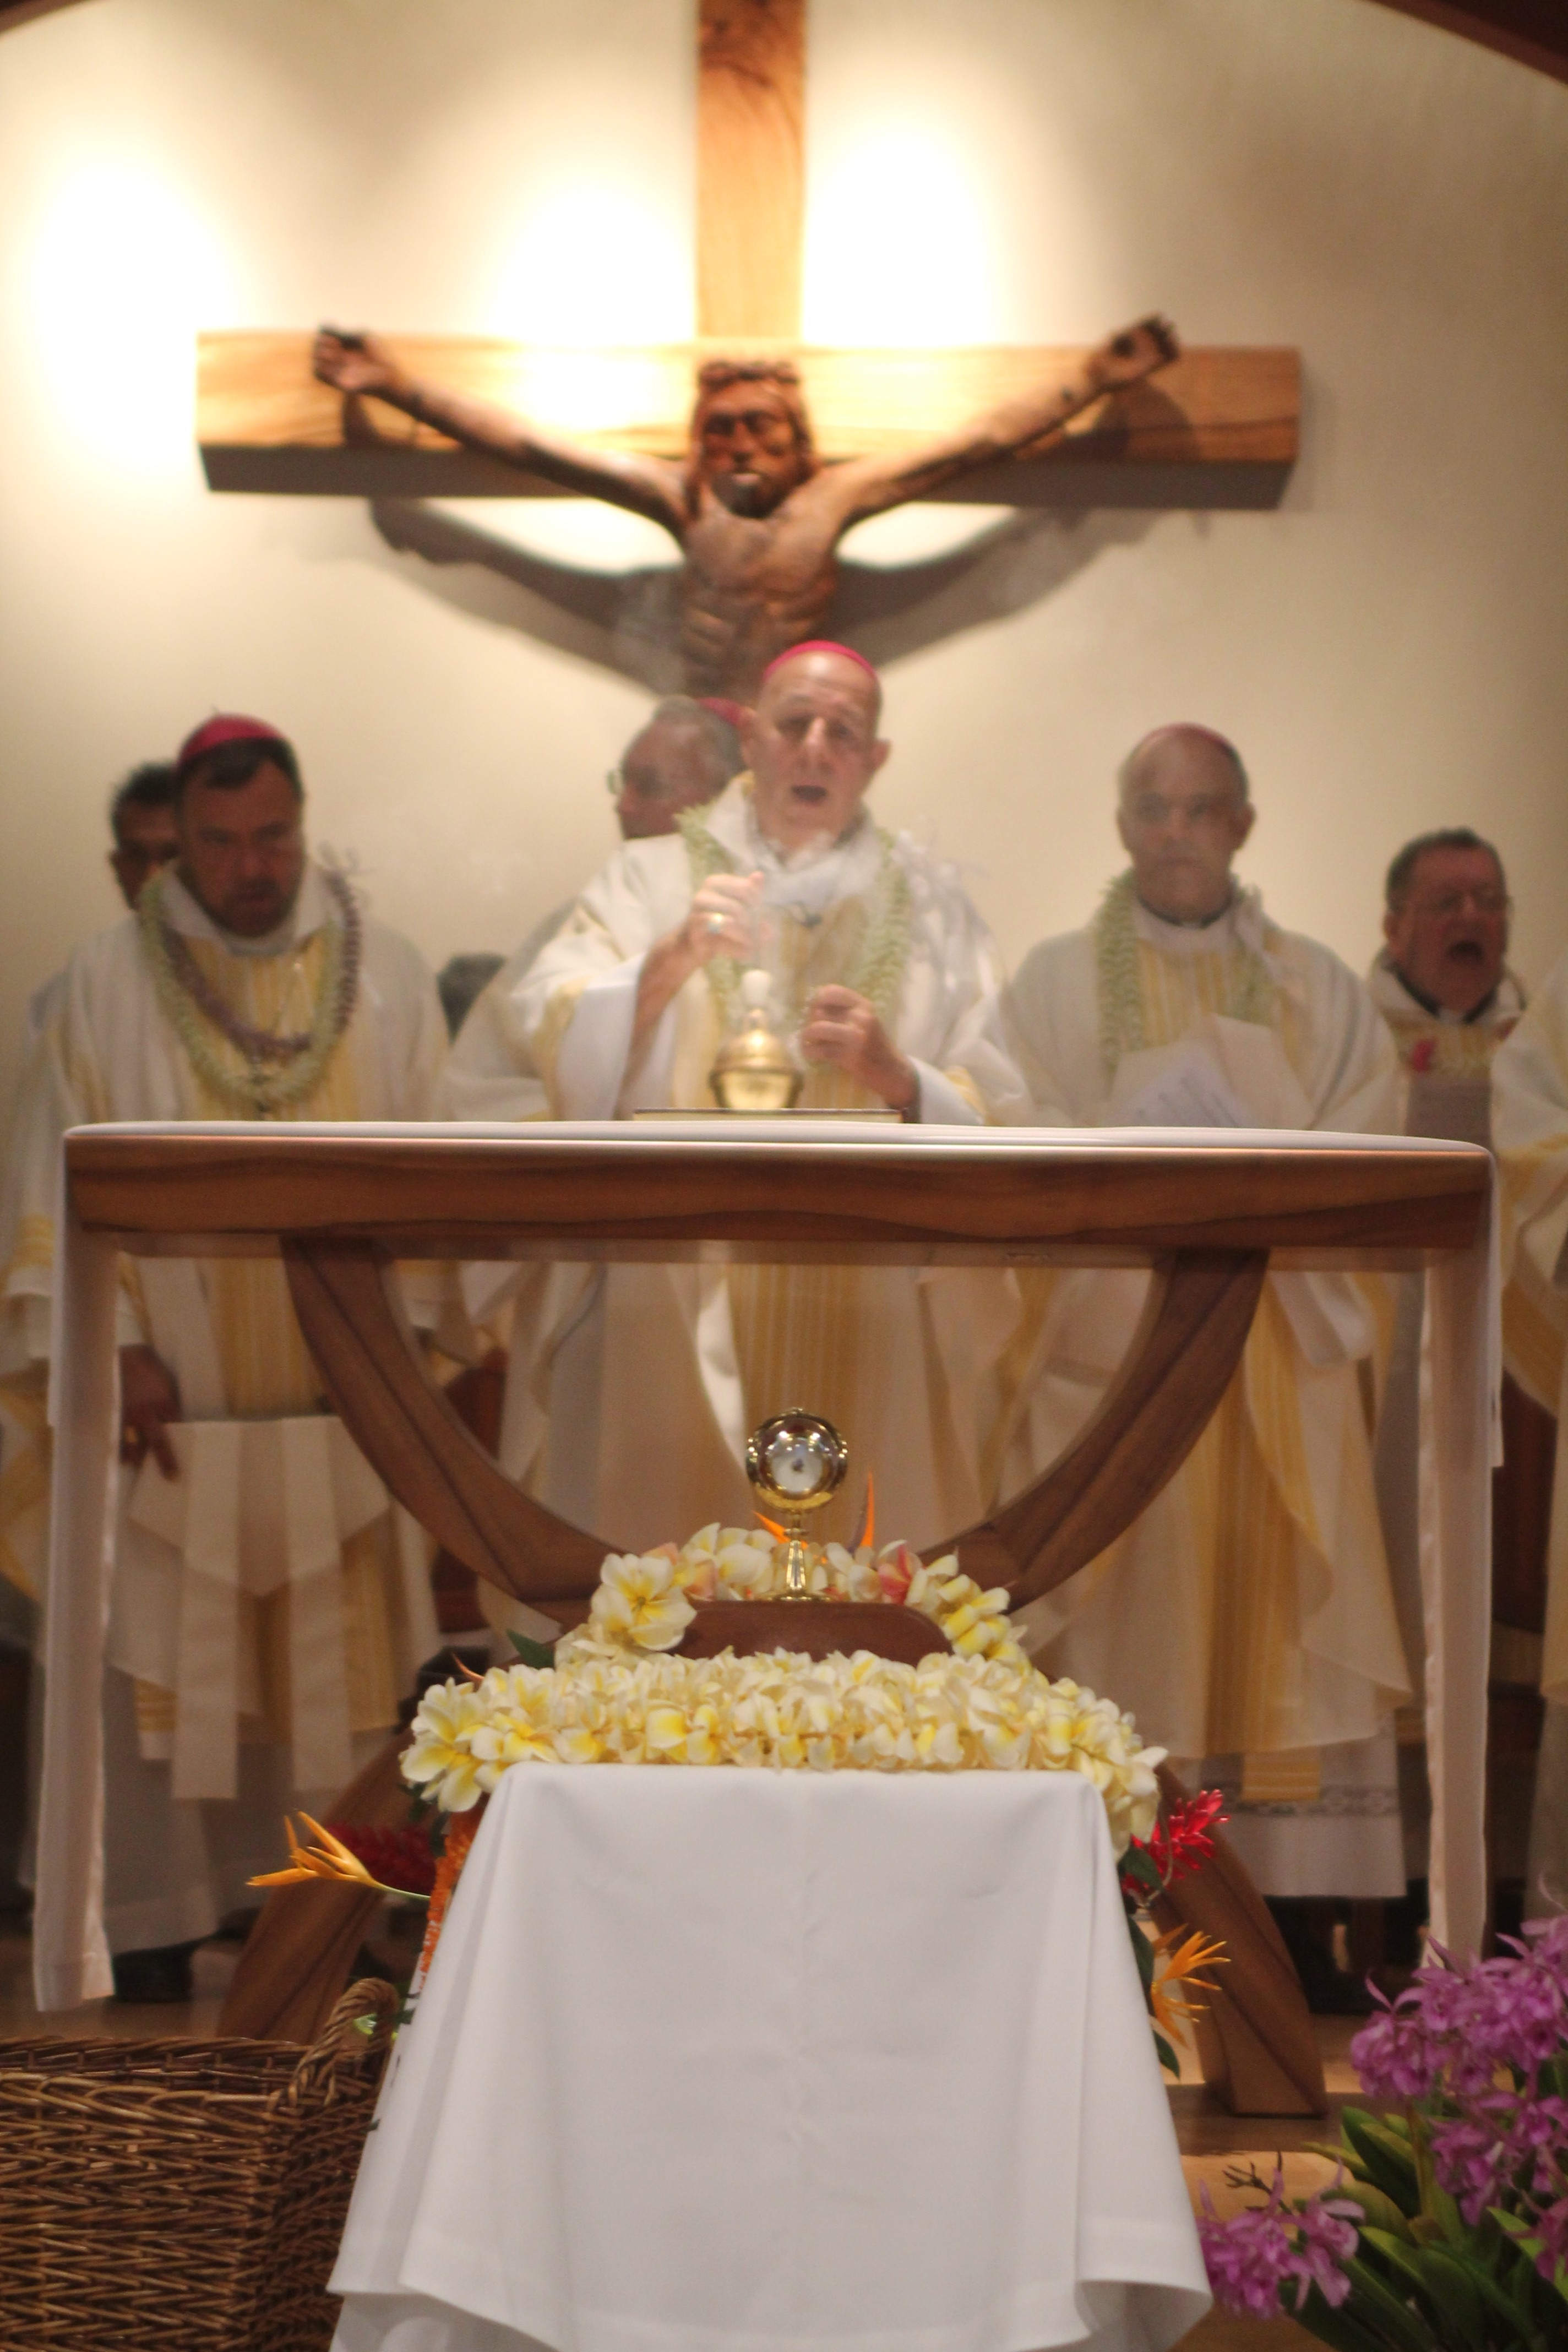 St. Marianne's relic honored at Mass held at St. Damien Church. Photo by Laura Pilz